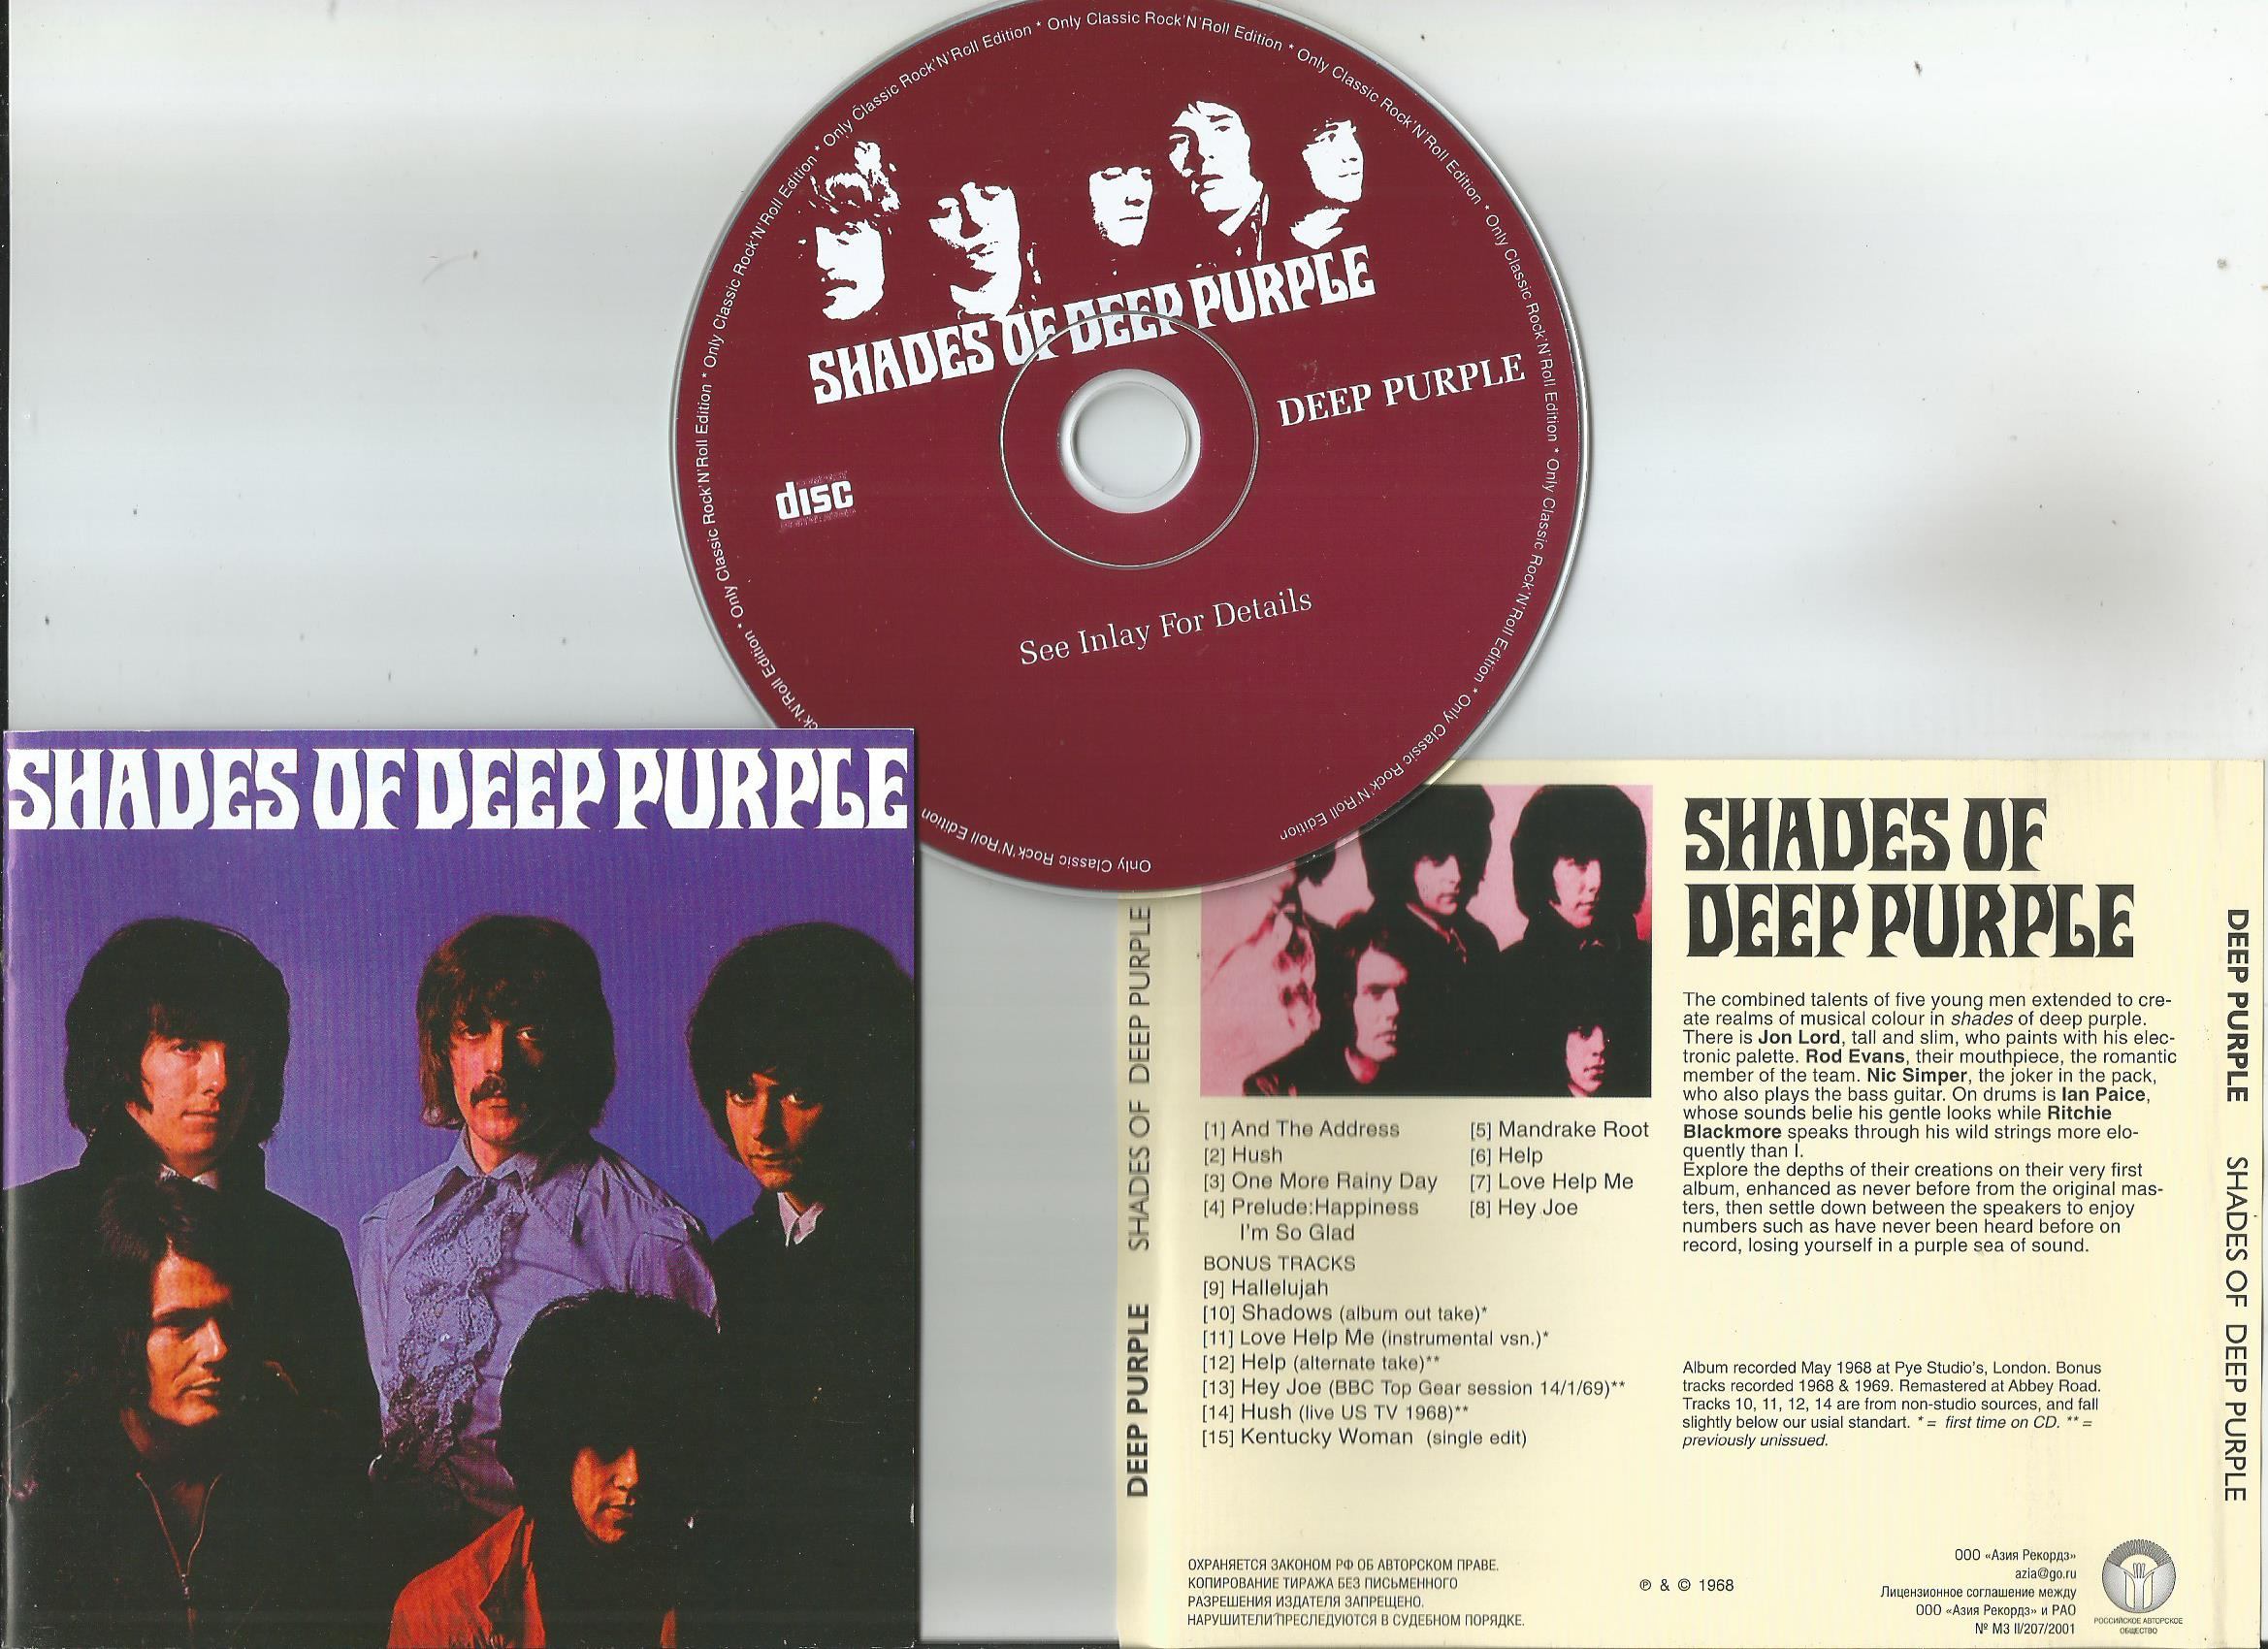 Shades Of Deep Purple 16page Booklet With Lyrics By Deep Purple Cd With Apexmusic Ref 1278778800,Best White Paint Colors For Walls